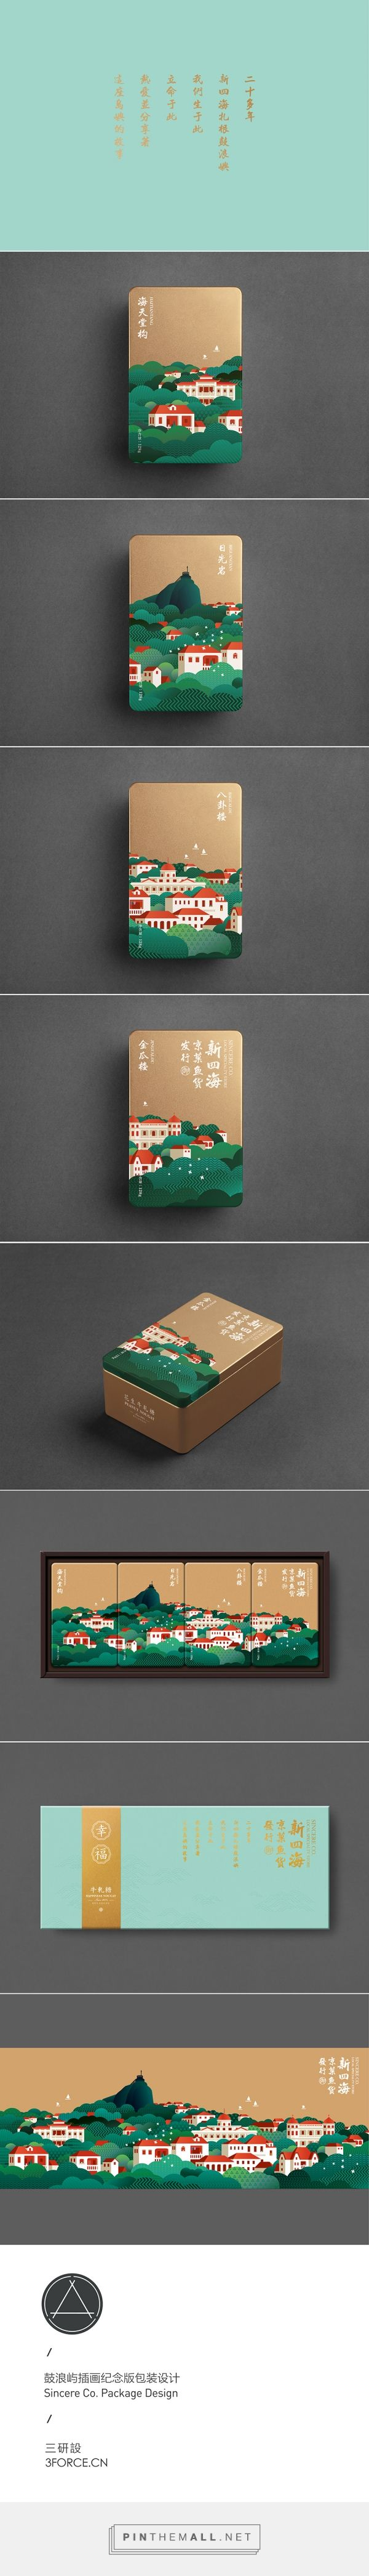 Sincere Co. Nougat Packaging / 新四海牛軋糖包裝設計 on Behance - created via…